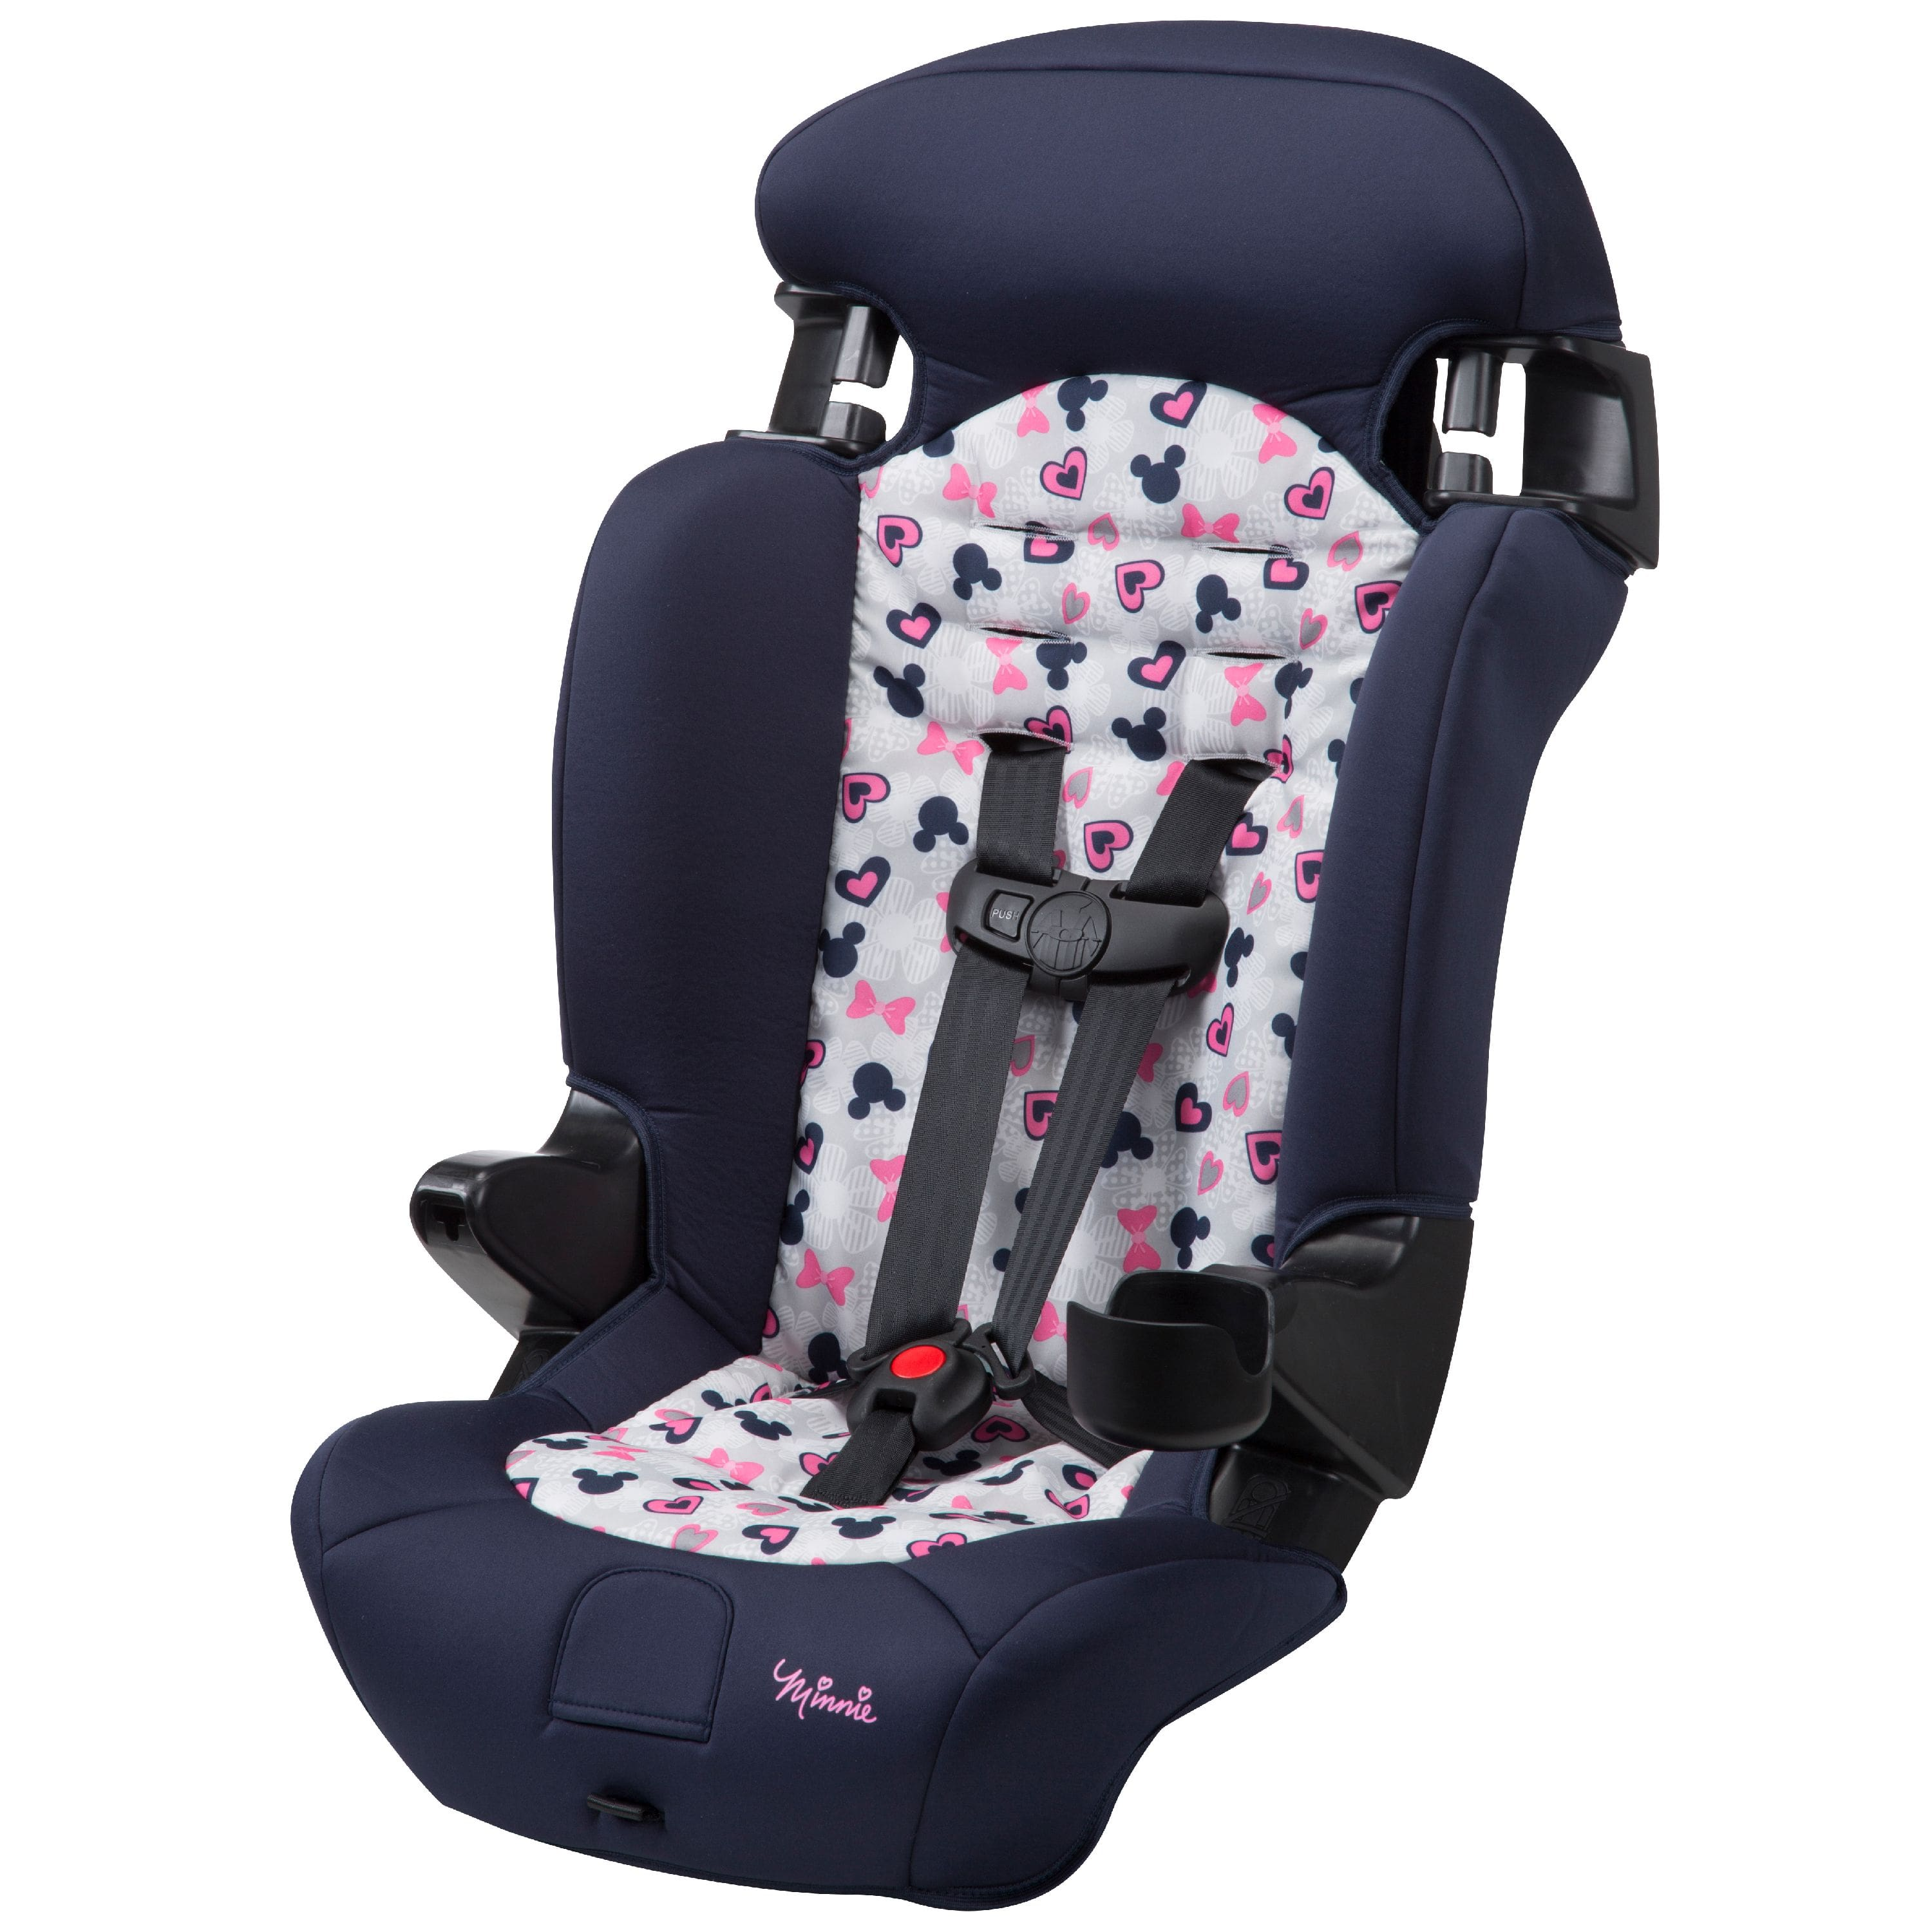 Disney Baby Finale 2-in-1 Booster Car Seat (2 colors) $41, Evenflo Advanced Chase LX Harness Booster Car Seat $49.45 & more + Free shipping